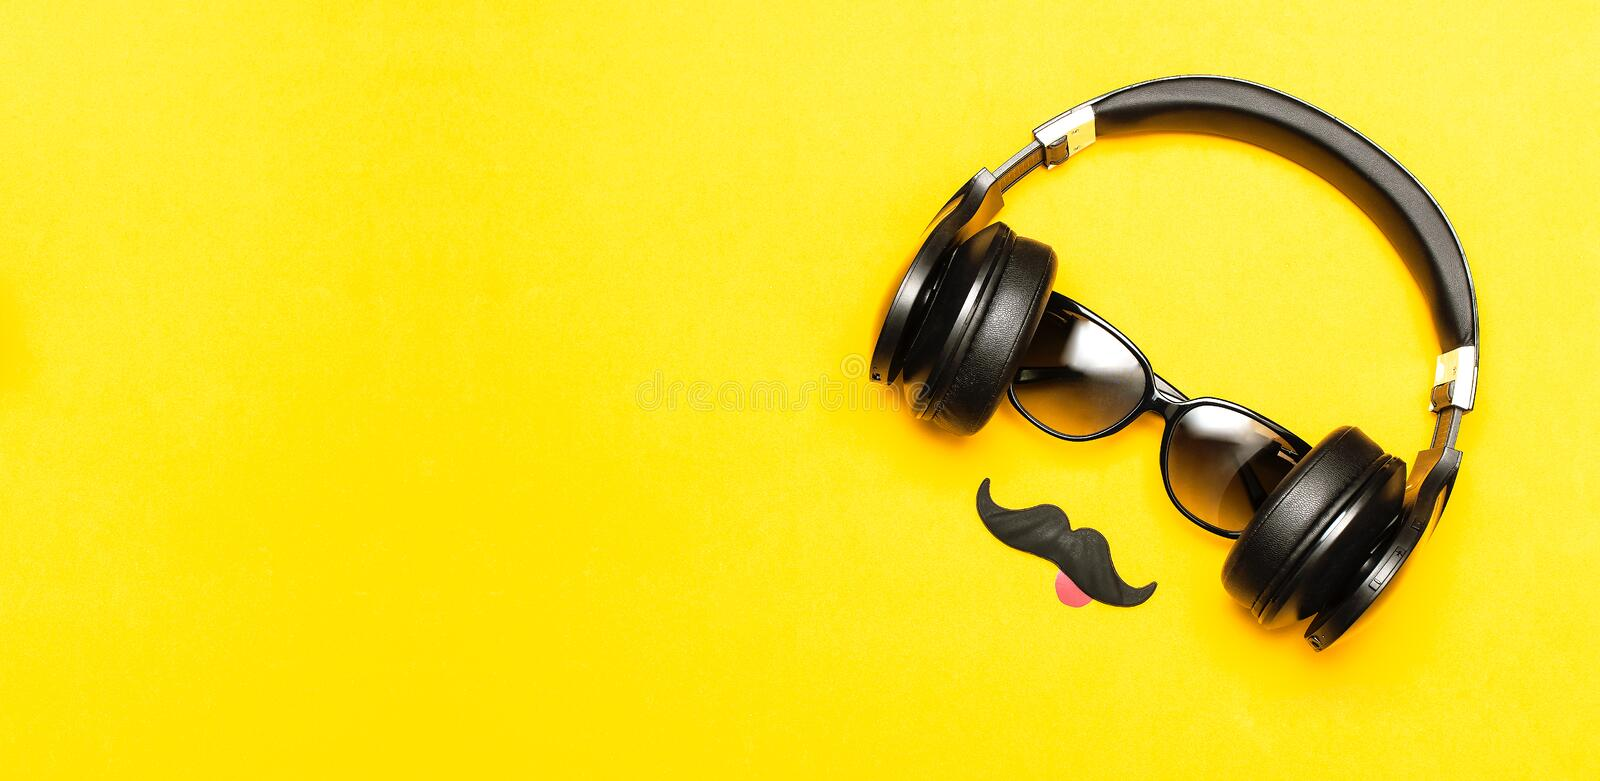 Creative party decoration concept. Black mustache, Sunglasses, headphones for music, props for photo booths carnival parties on stock image